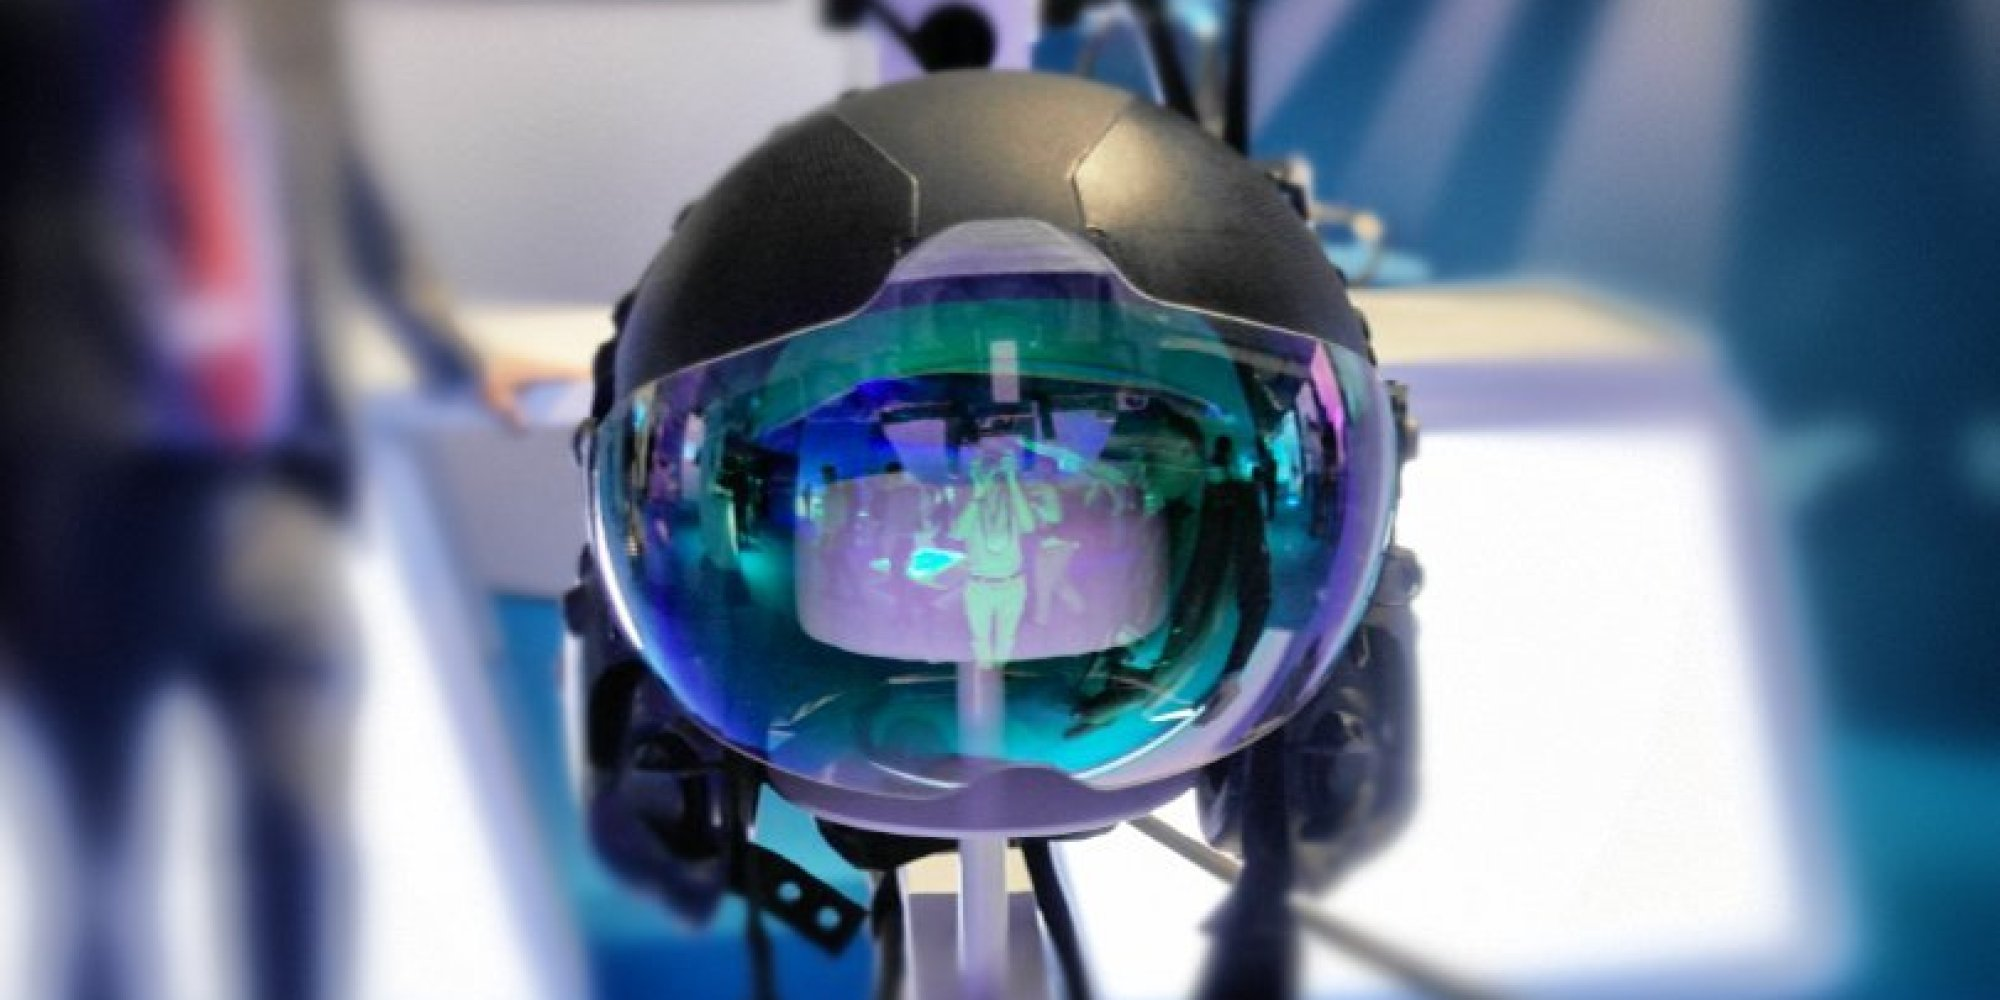 the events that changed military technology Turning to china, the dynamic regarding access to european military technology  has completely changed over the past five years obtaining.